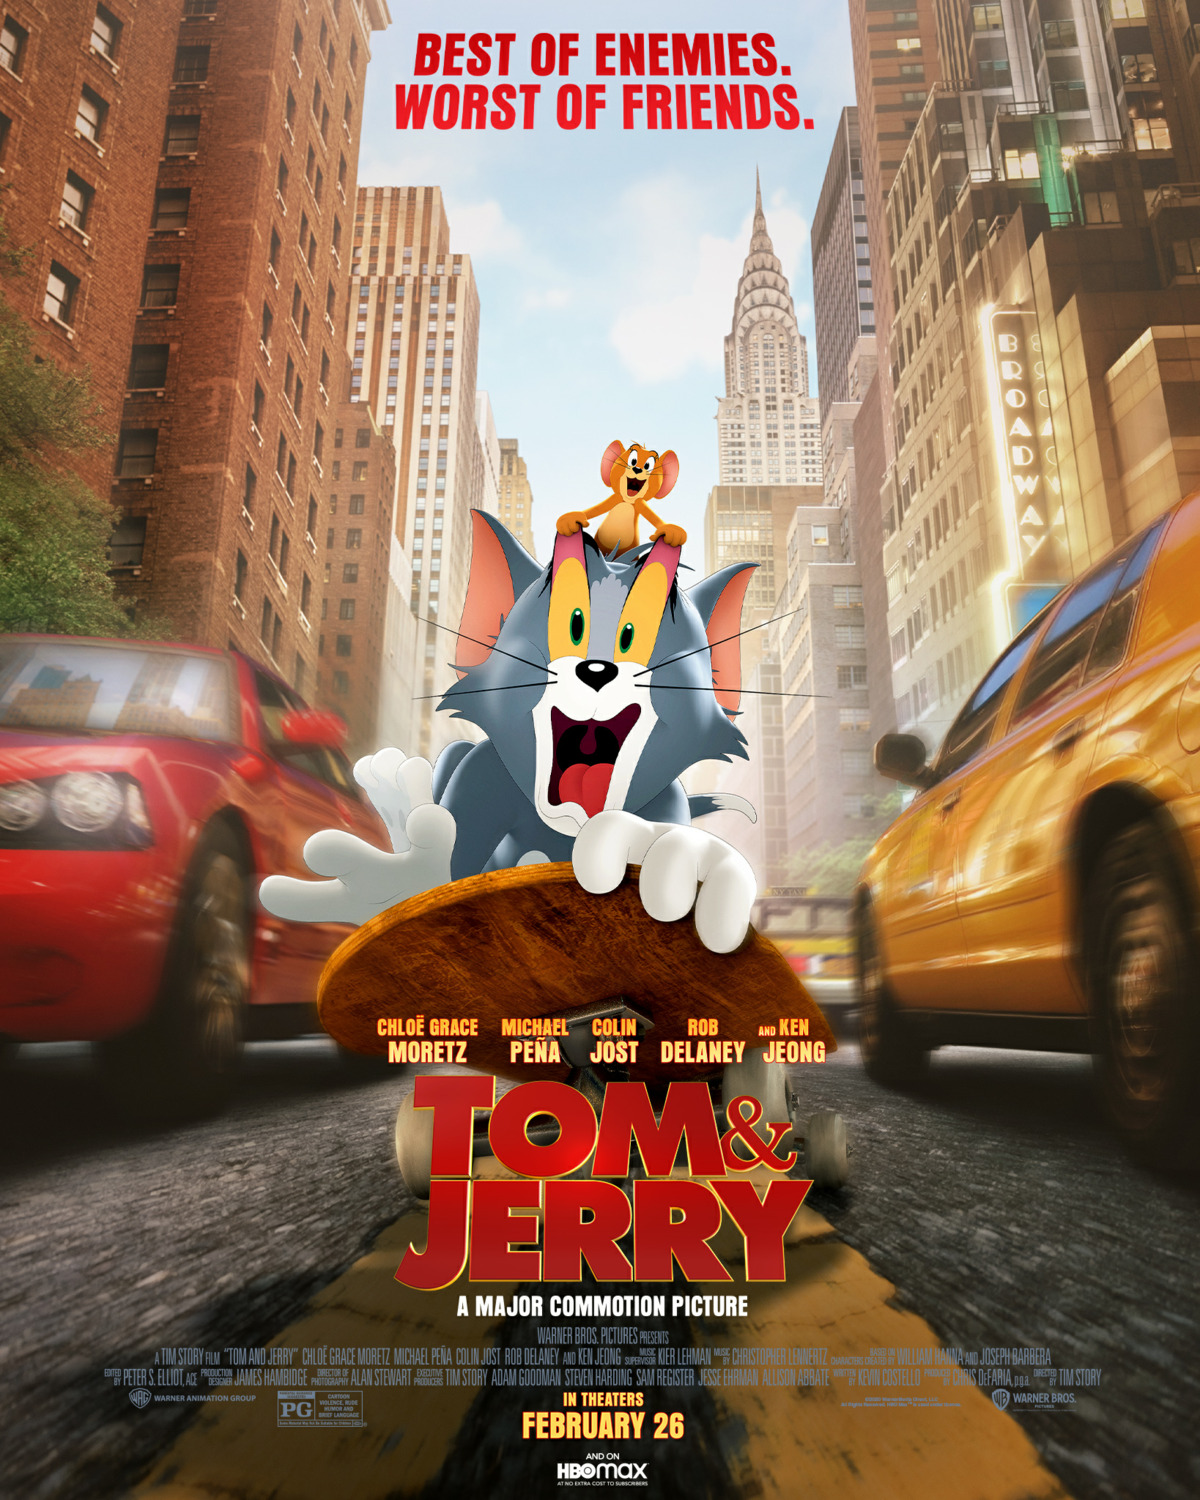 Tom & Jerry movie poster